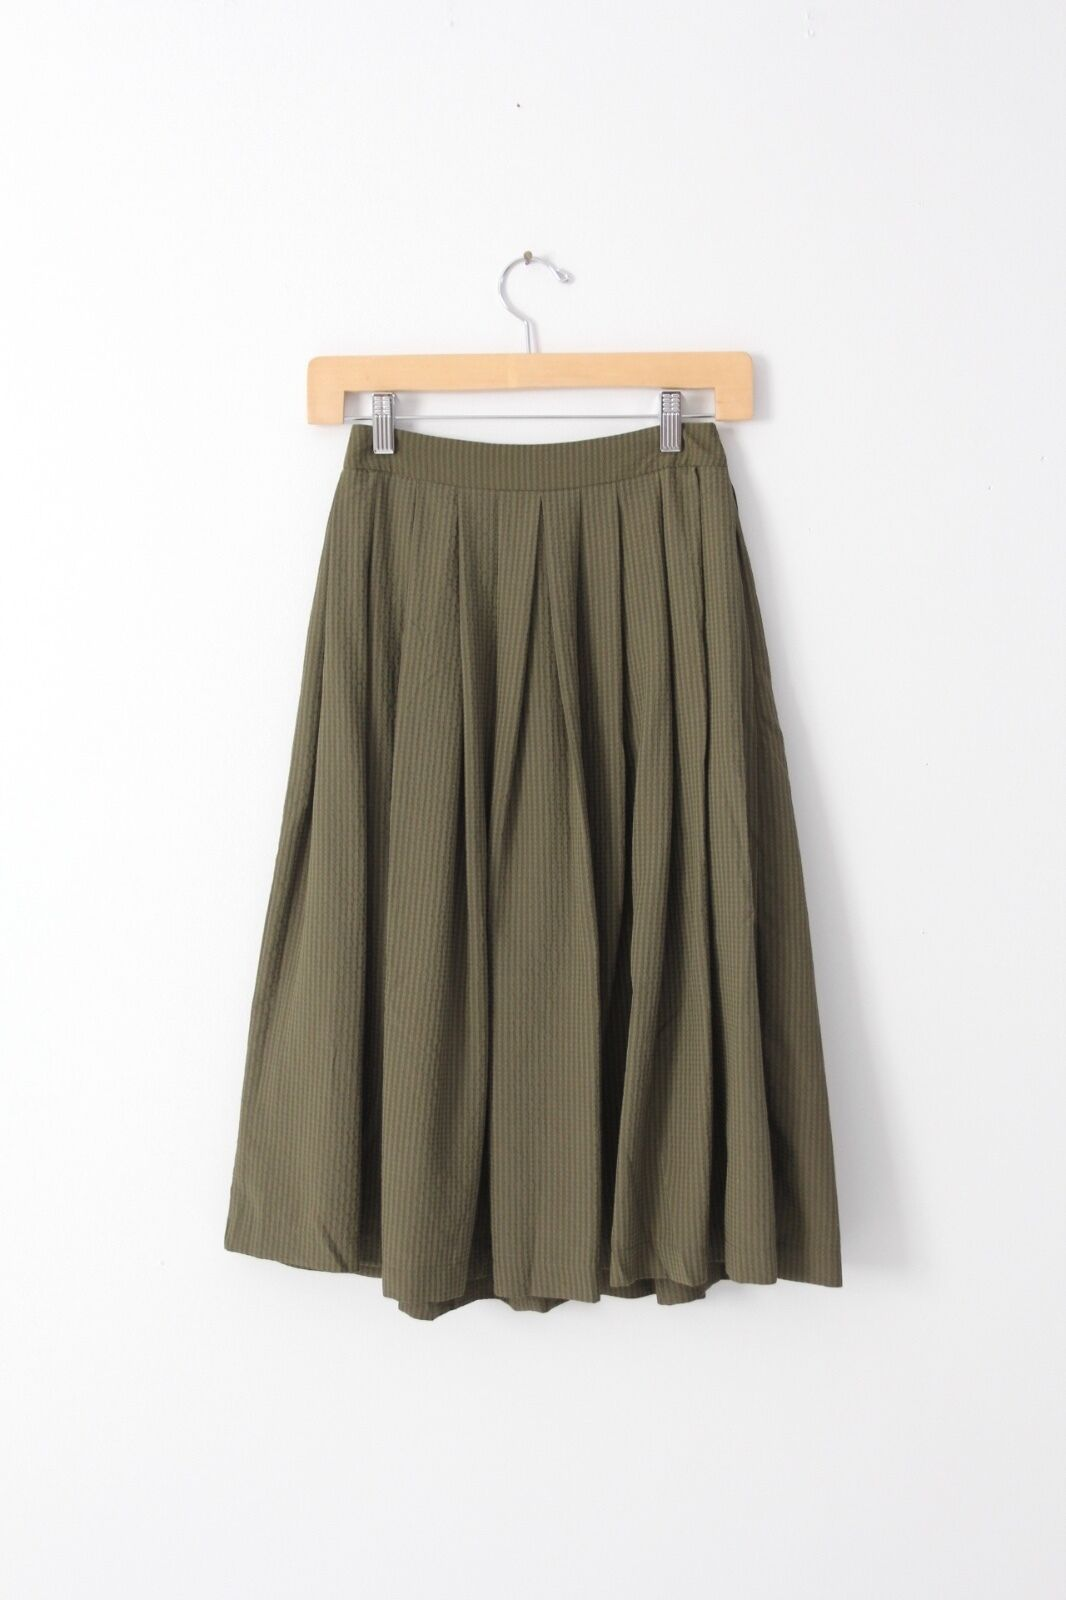 TopShop a-line pleated skirt, viscose olive green knee length skirt size 0